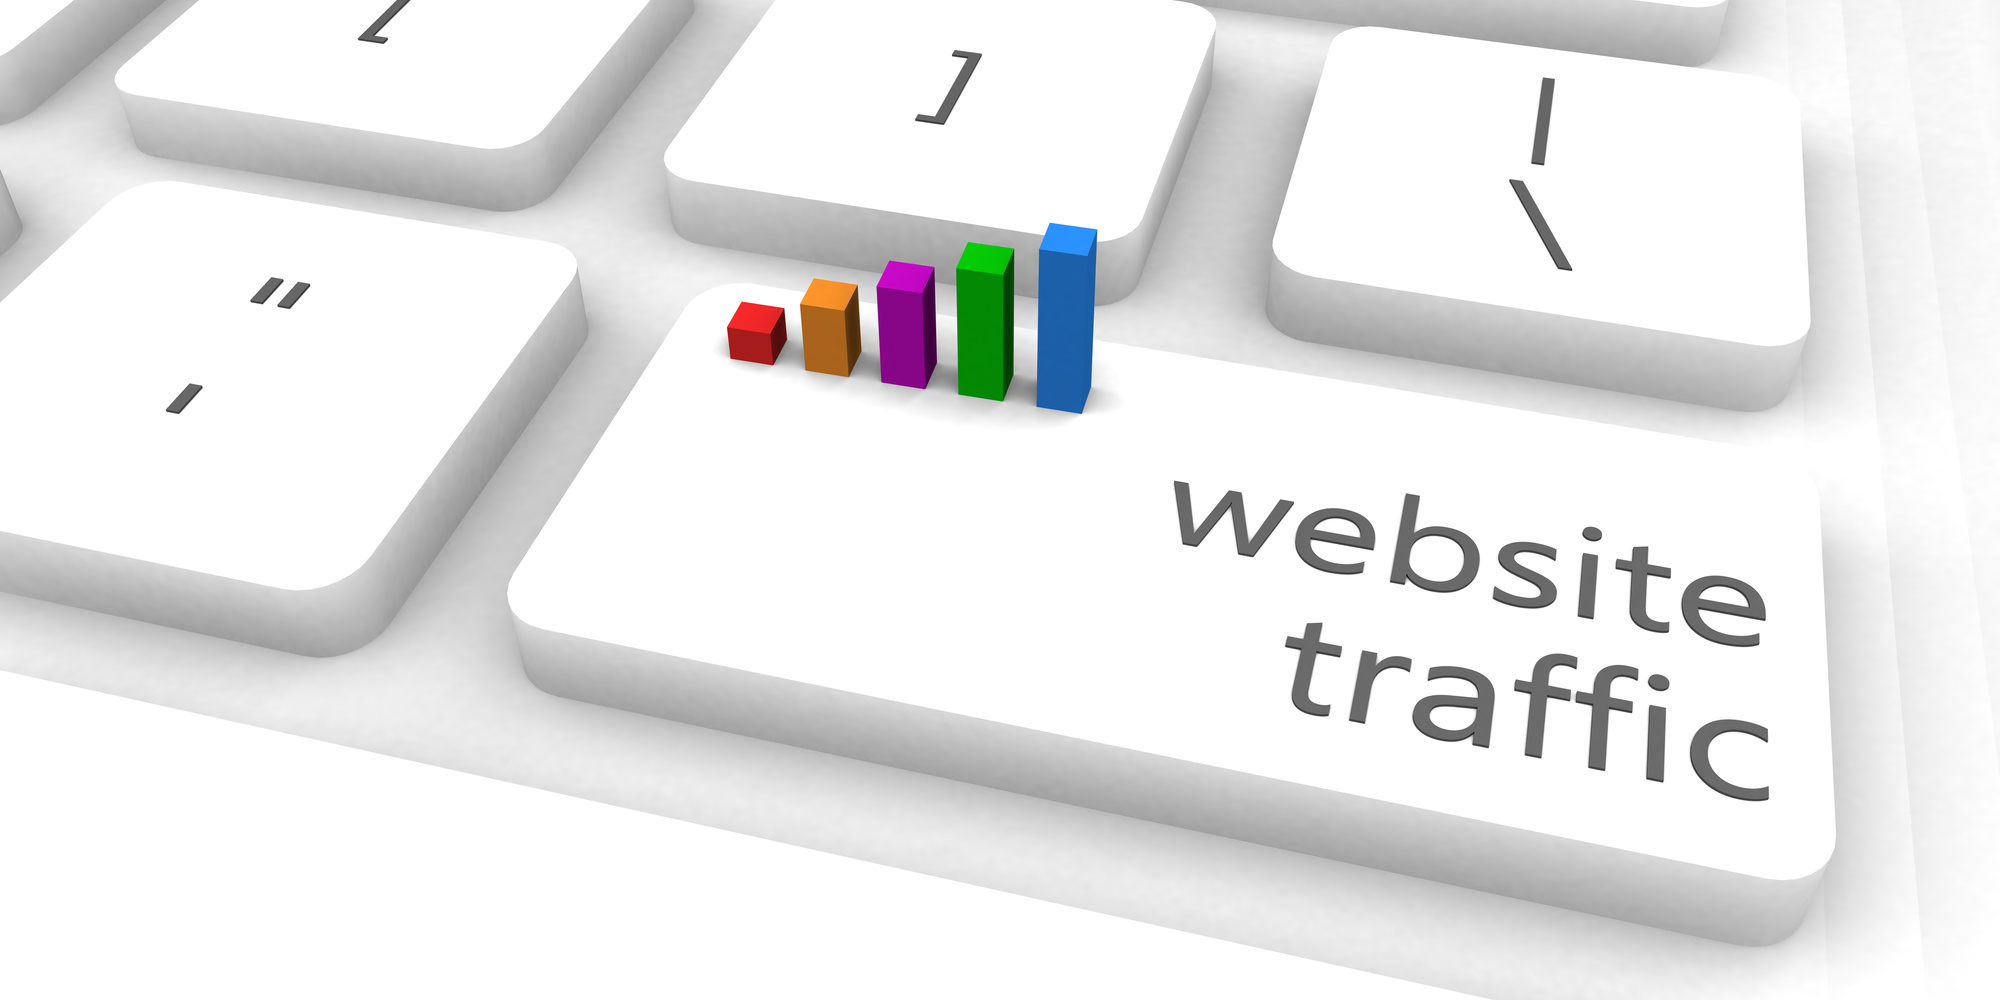 Increase website traffic, How to increase website traffic organically, increase website traffic organically, website traffic organically, website traffic, What is Website Traffic, Promote your site with digital ads, Increase website traffic 2020, increase website traffic fast, how to increase website traffic through google, how to get millions of traffic to your website